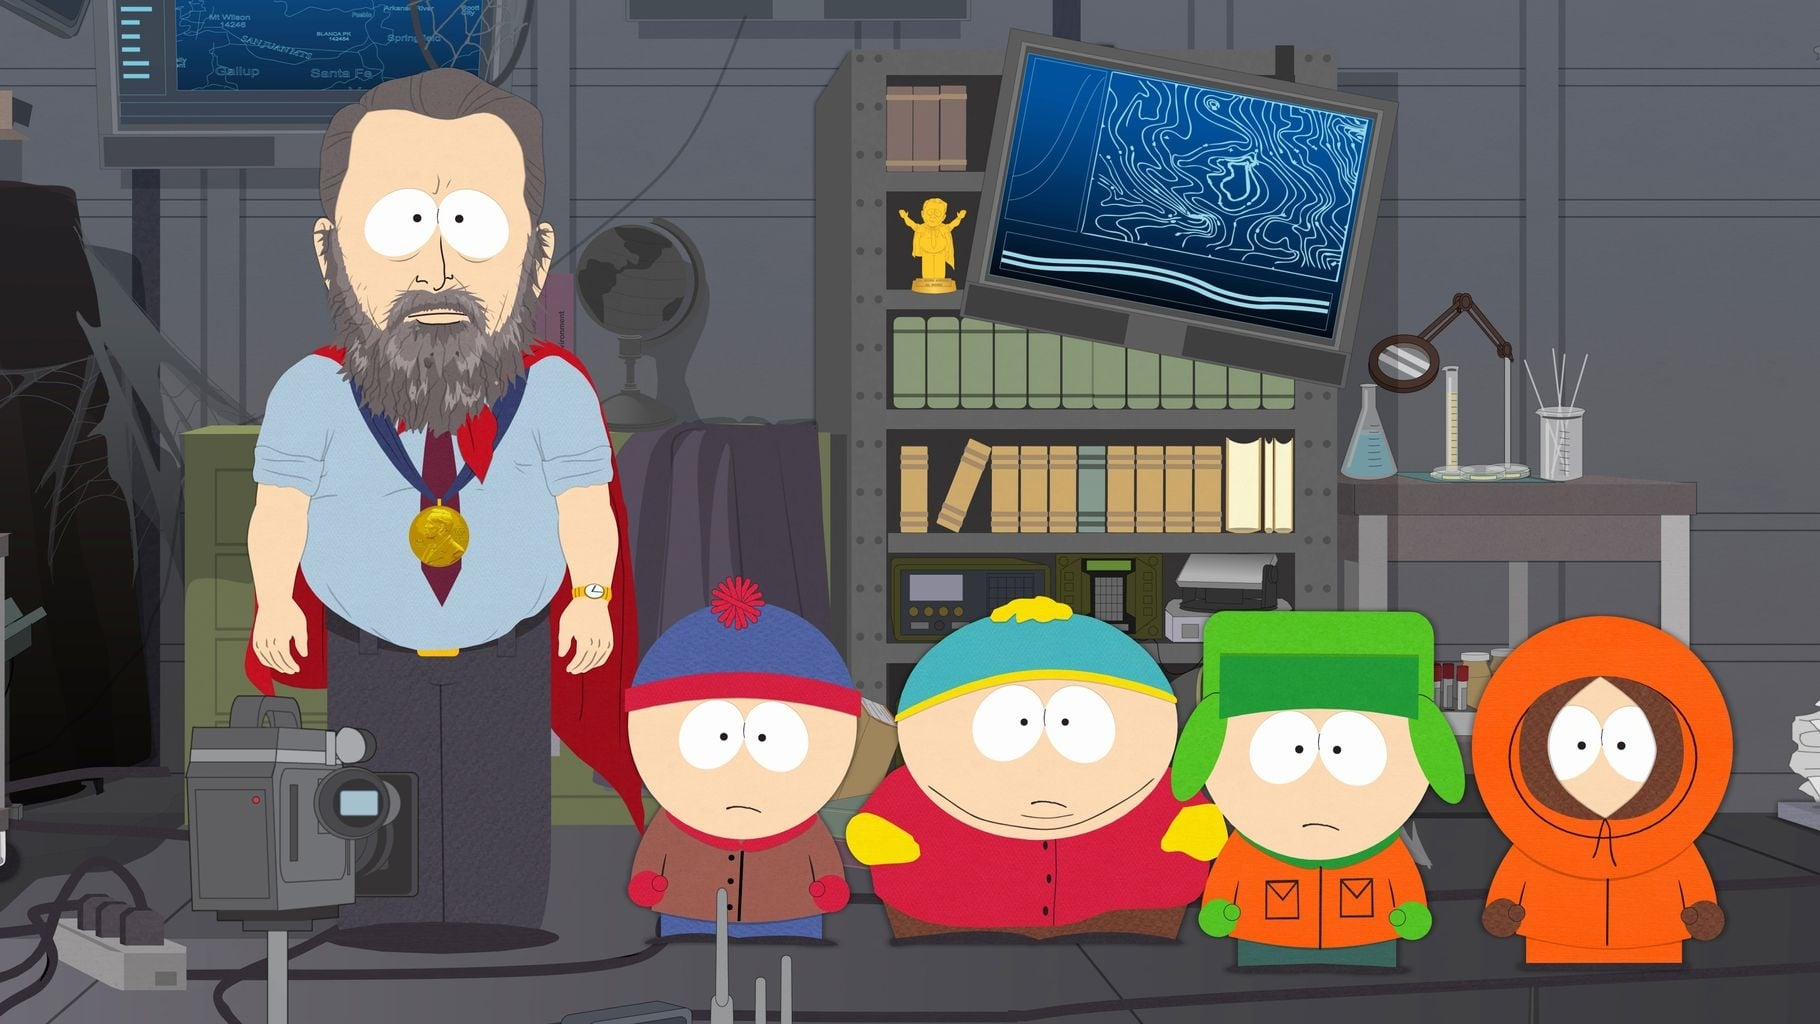 South Park - Season 0 Episode 15 : Movie Trailer: Beefcake